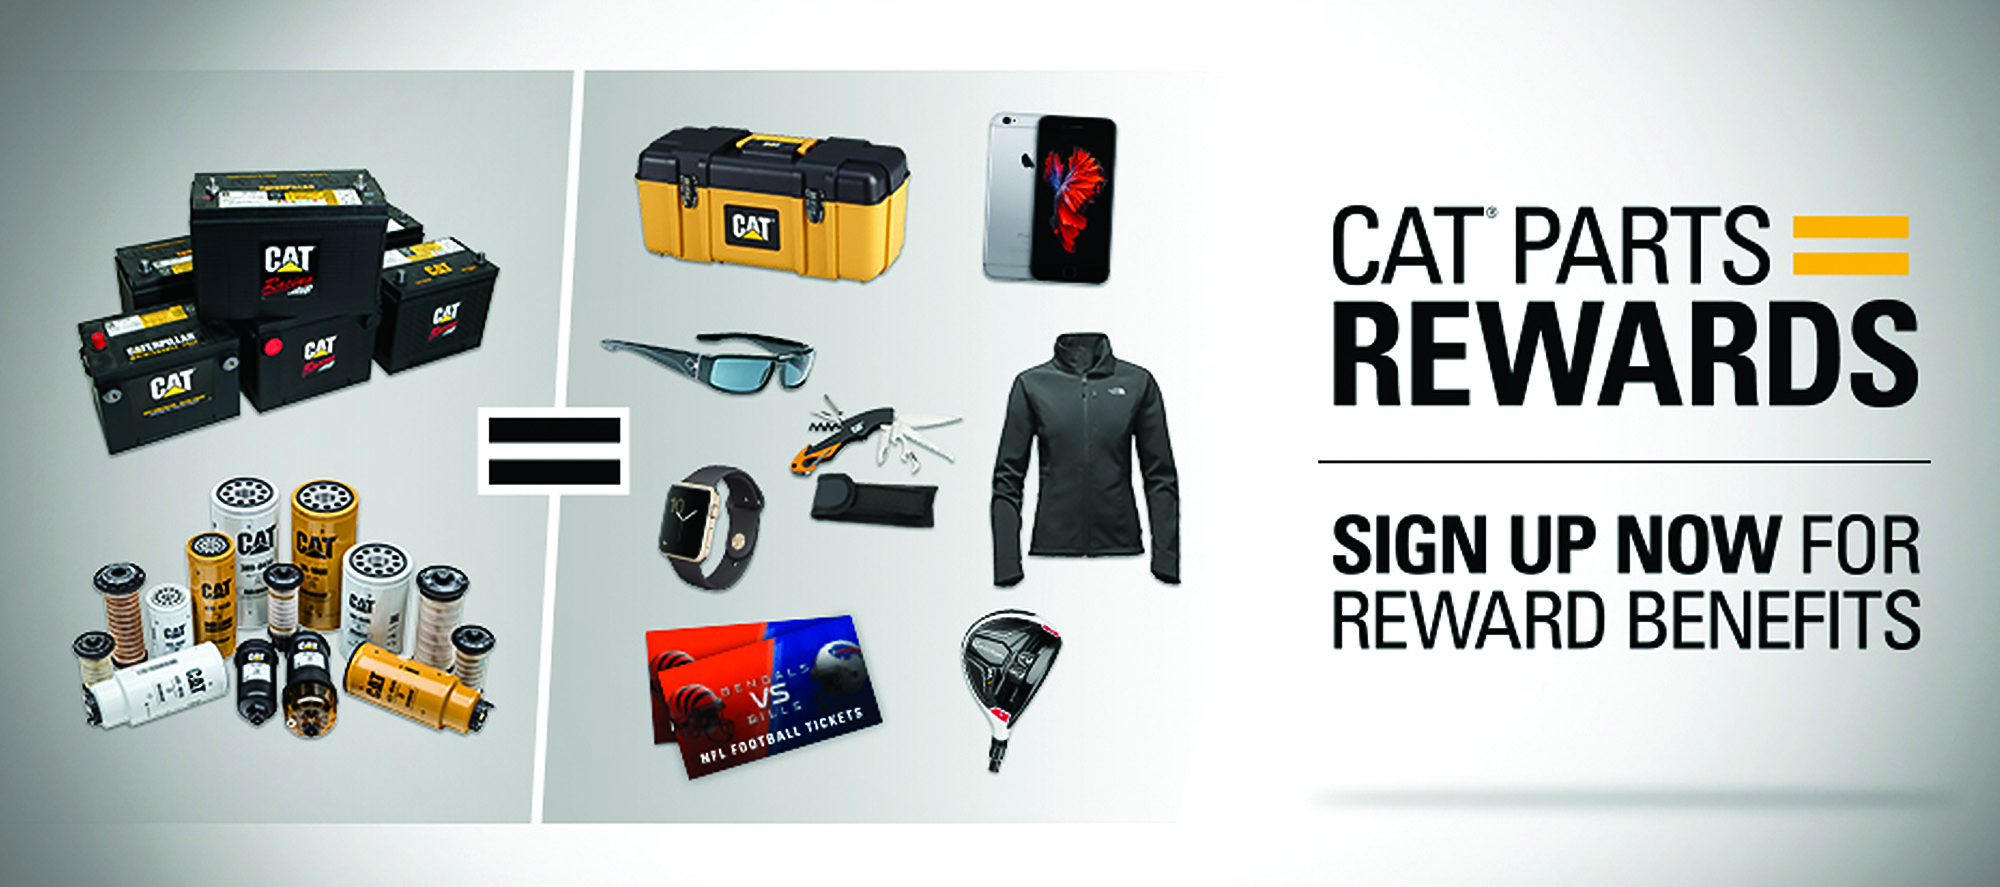 Get Rewarded Cat Loyalty Program